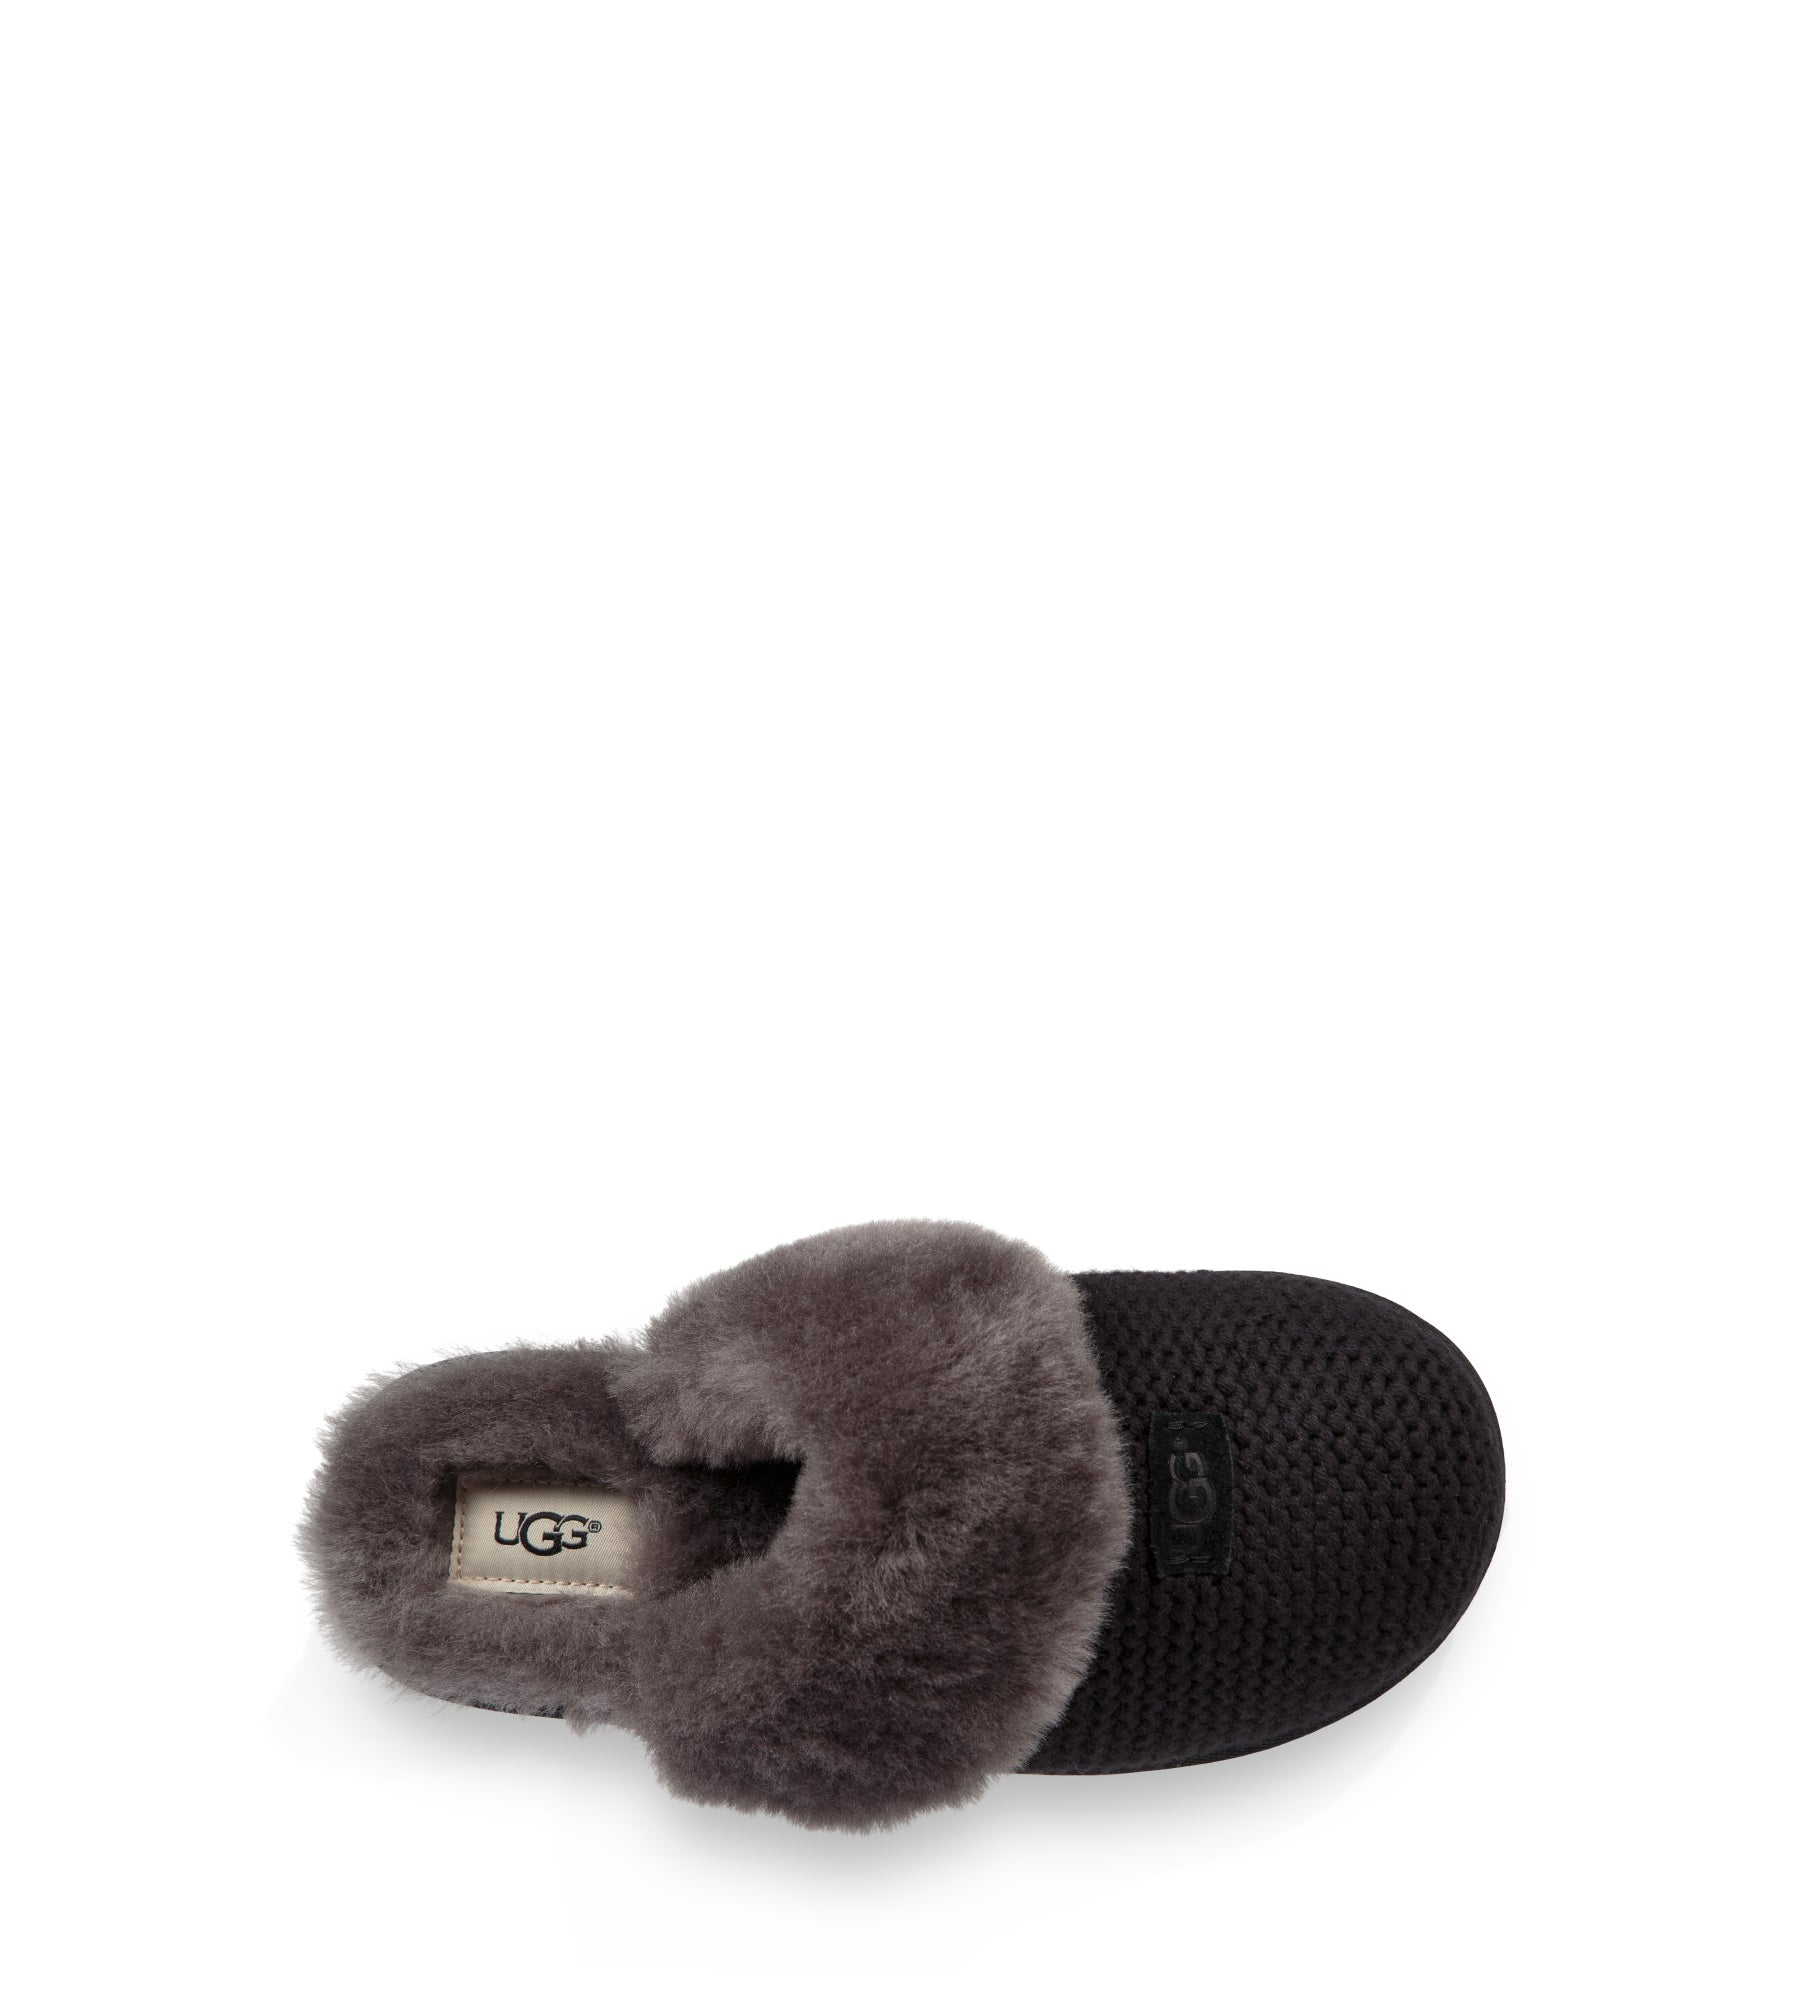 Ugg Cozy Knit Slippers Milano Shoes